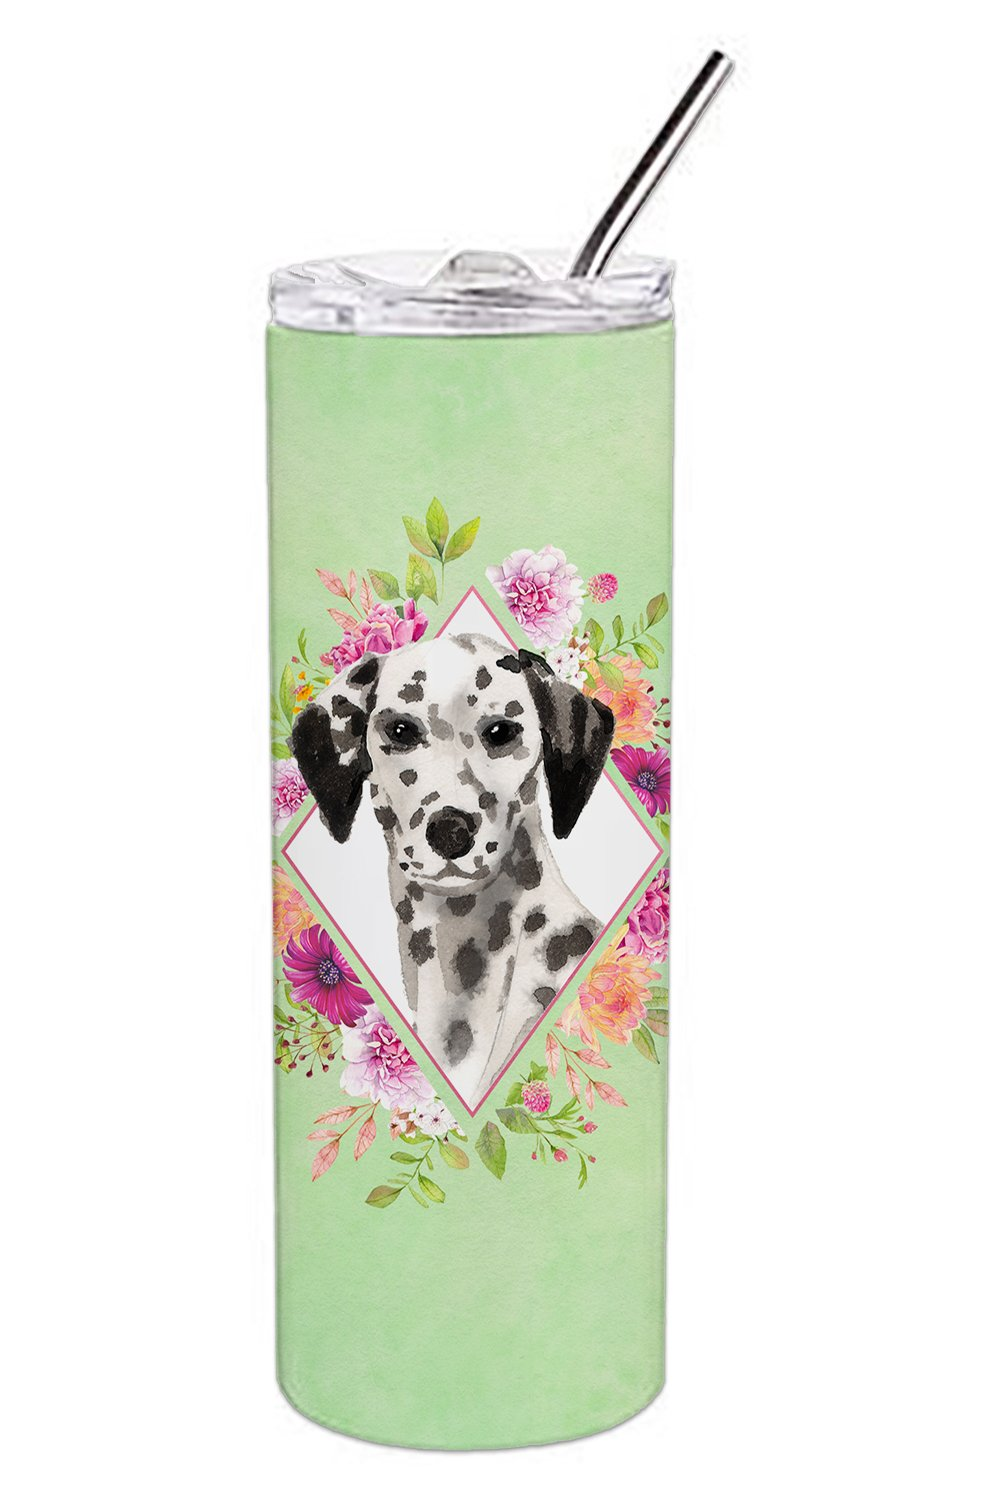 Dalmatian Green Flowers Double Walled Stainless Steel 20 oz Skinny Tumbler CK4402TBL20 by Caroline's Treasures